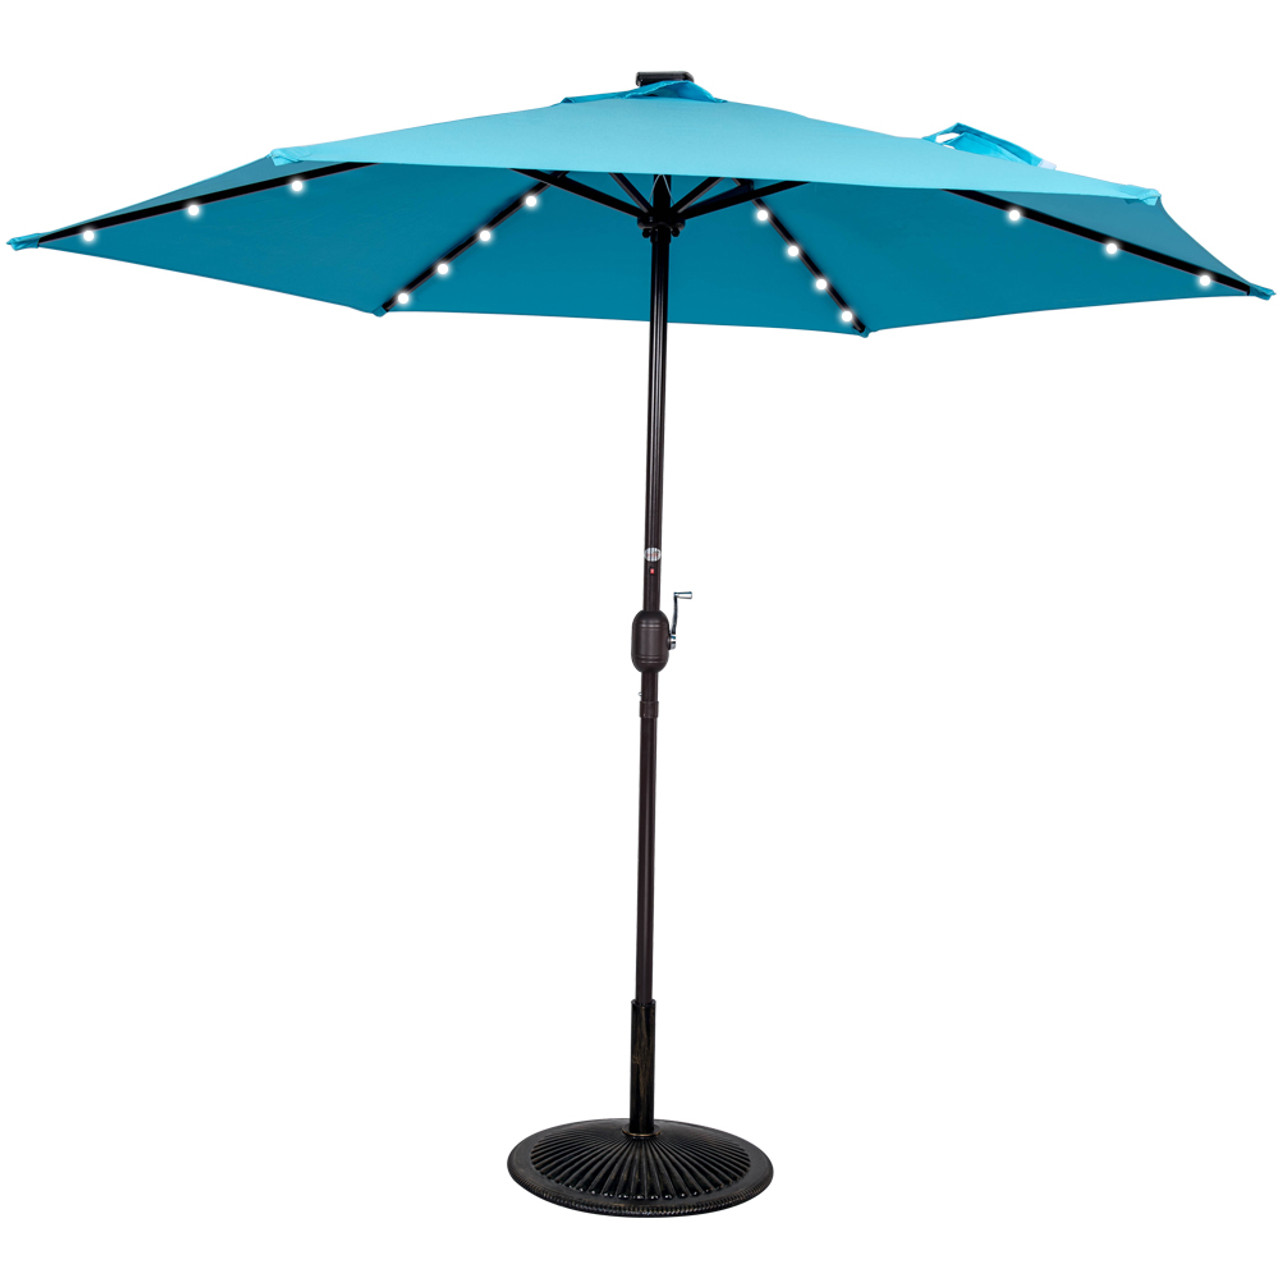 9ft 24 led light outdoor market patio umbrella garden pool with Market Patio Umbrella